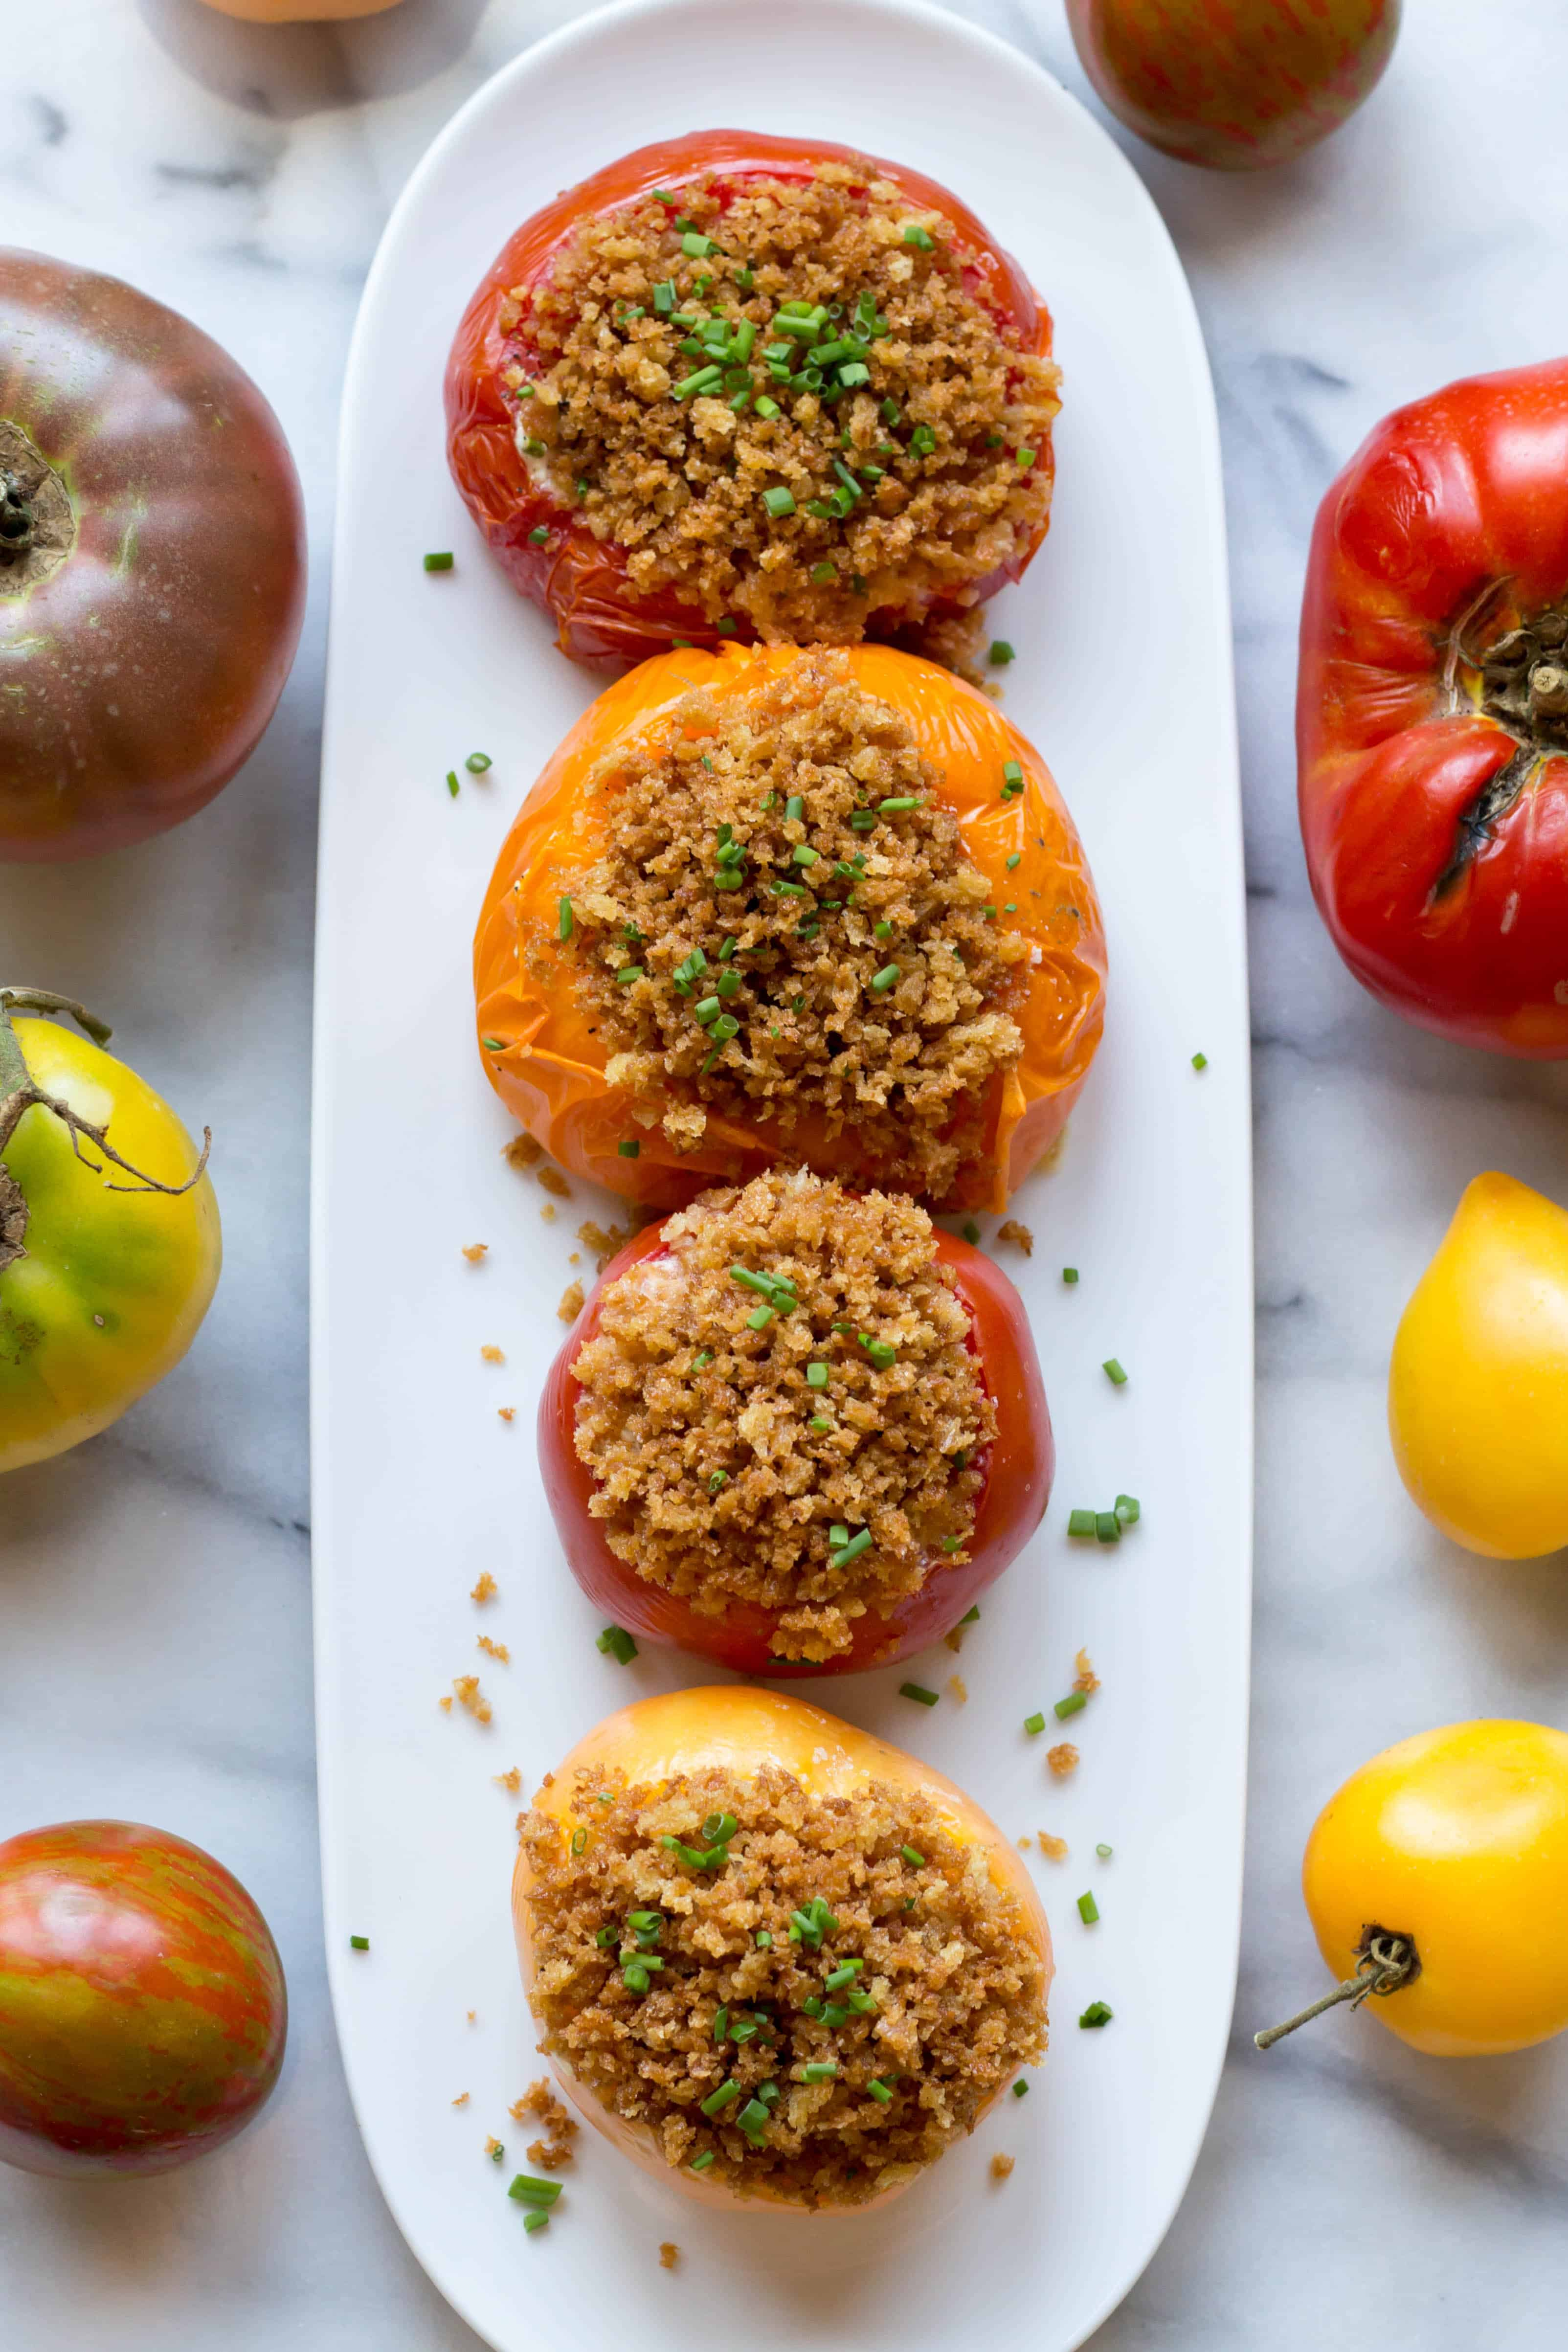 Goat Cheese + Chive Stuffed Tomatoes (Video!)